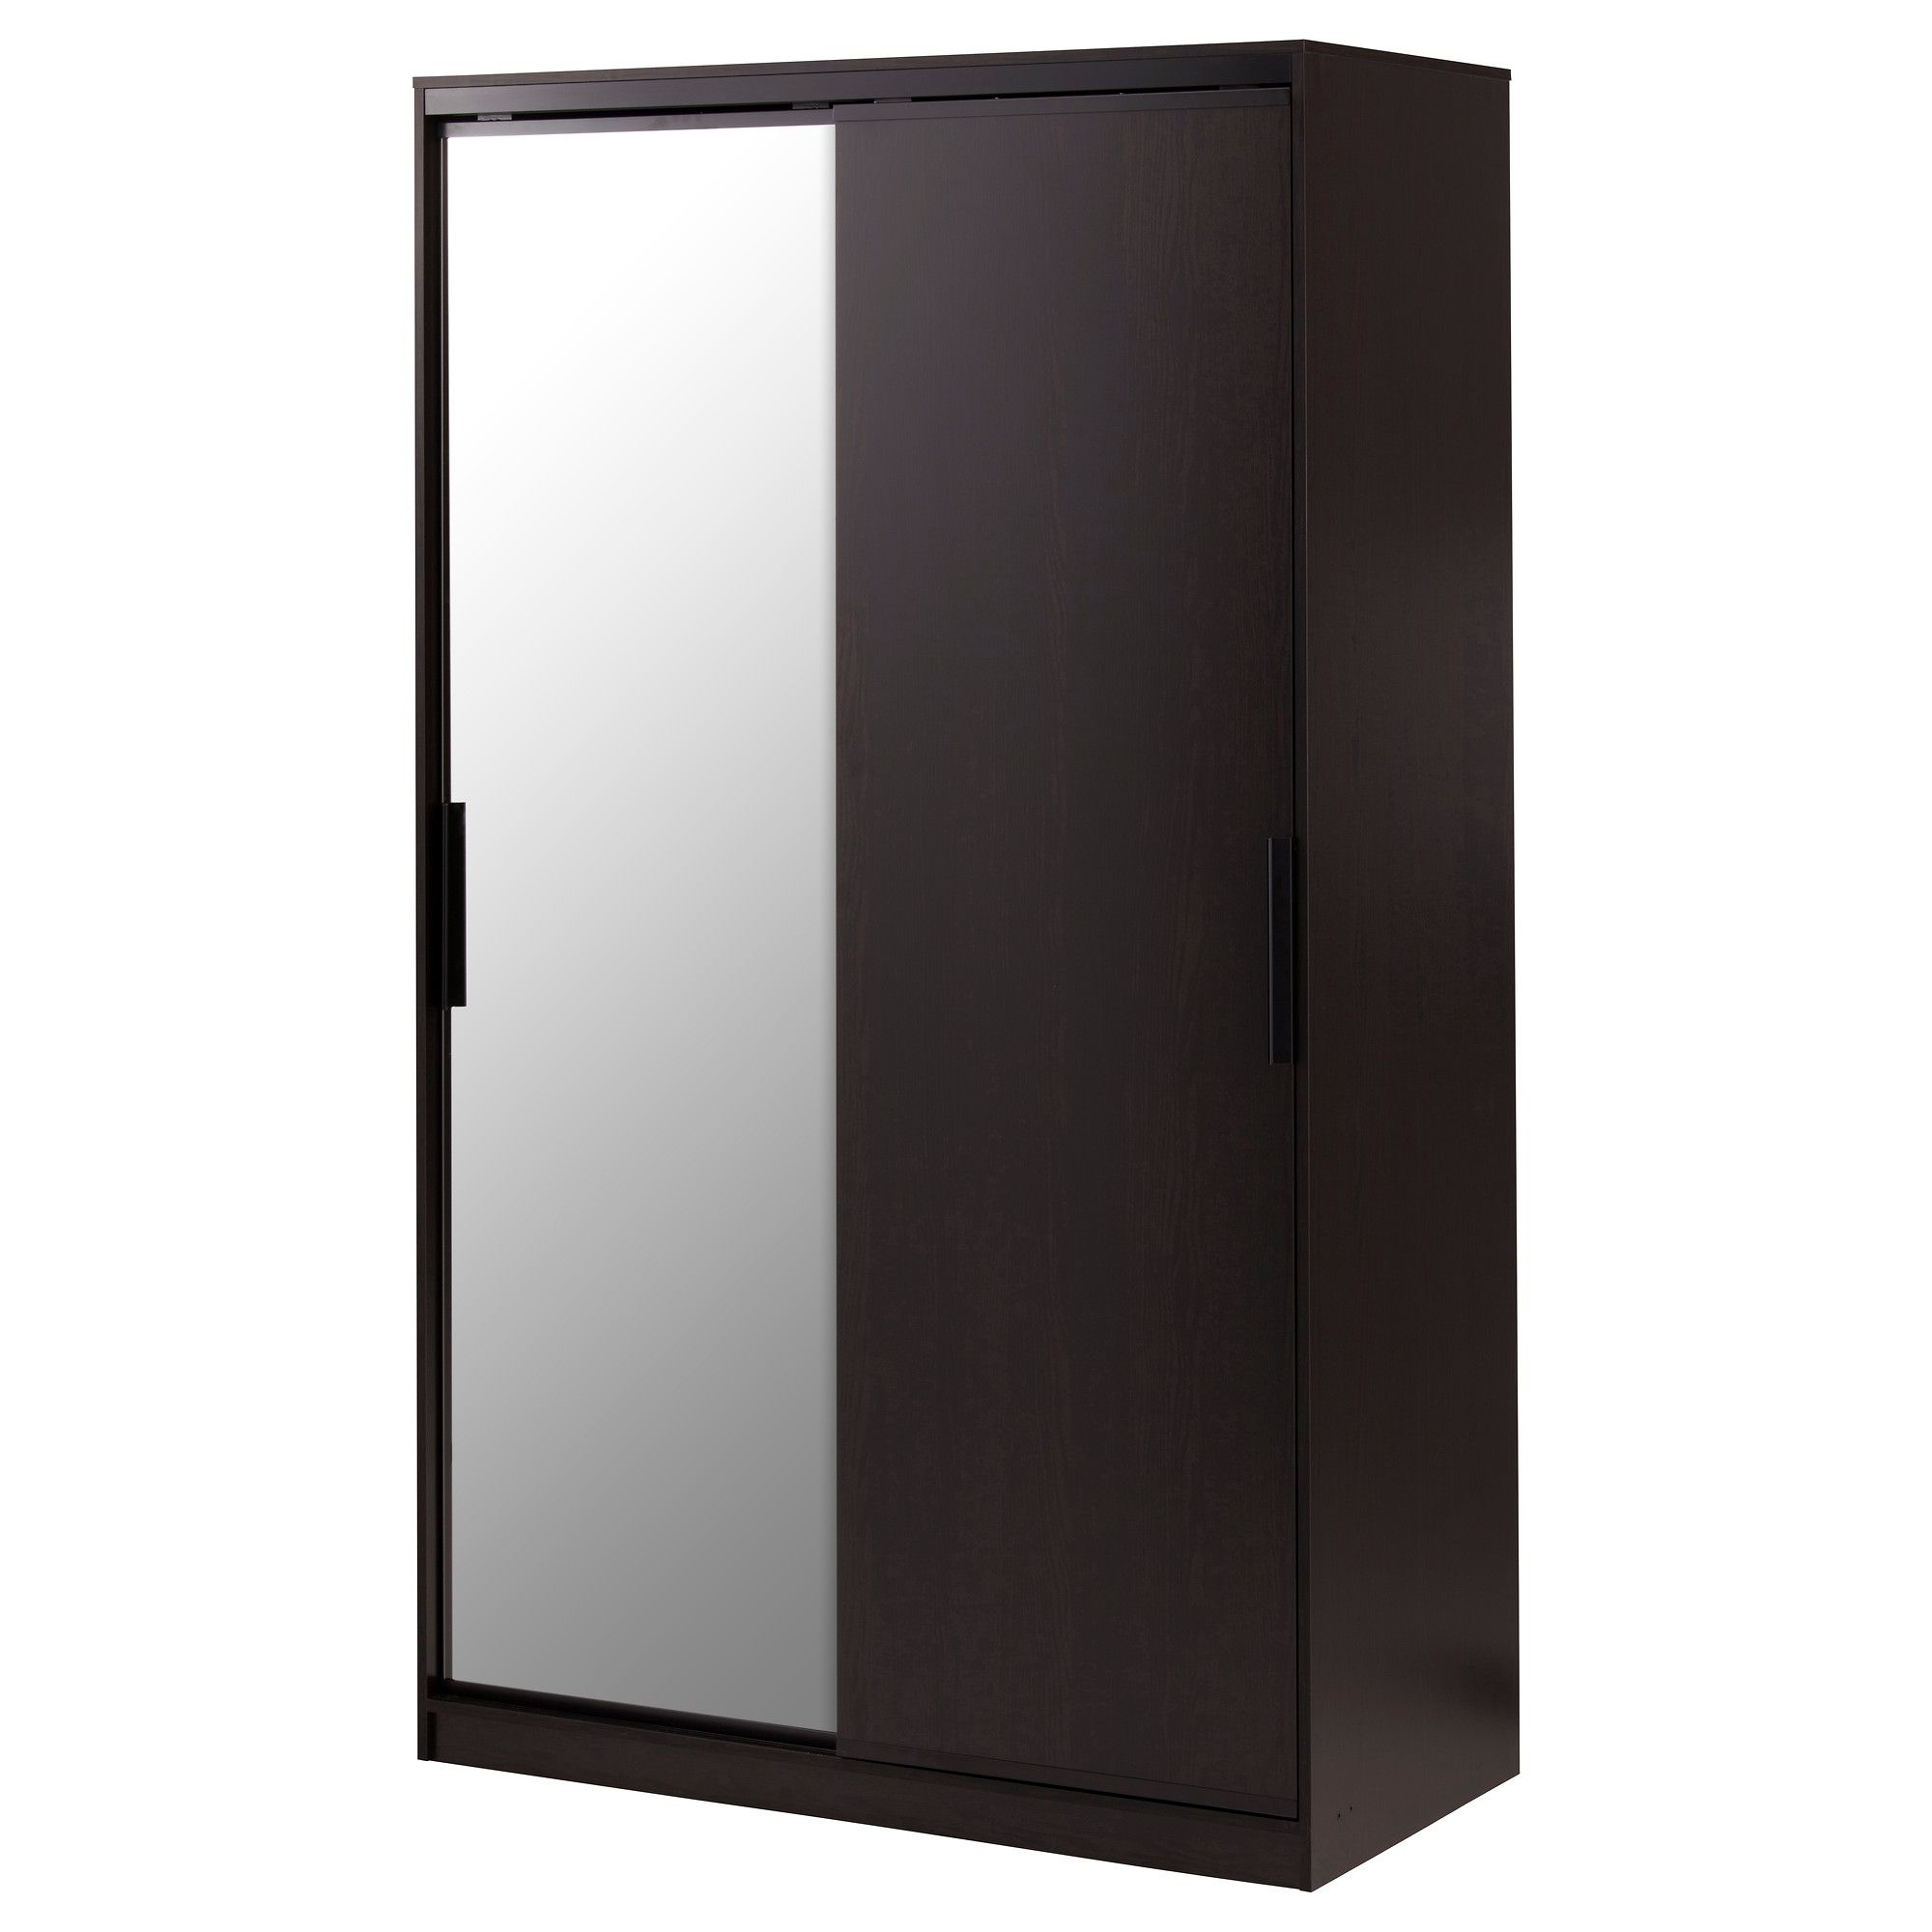 Ikea morvik wardrobe glass sliding doors allow more room for furniture because they donut take - Etagere cd ikea ...